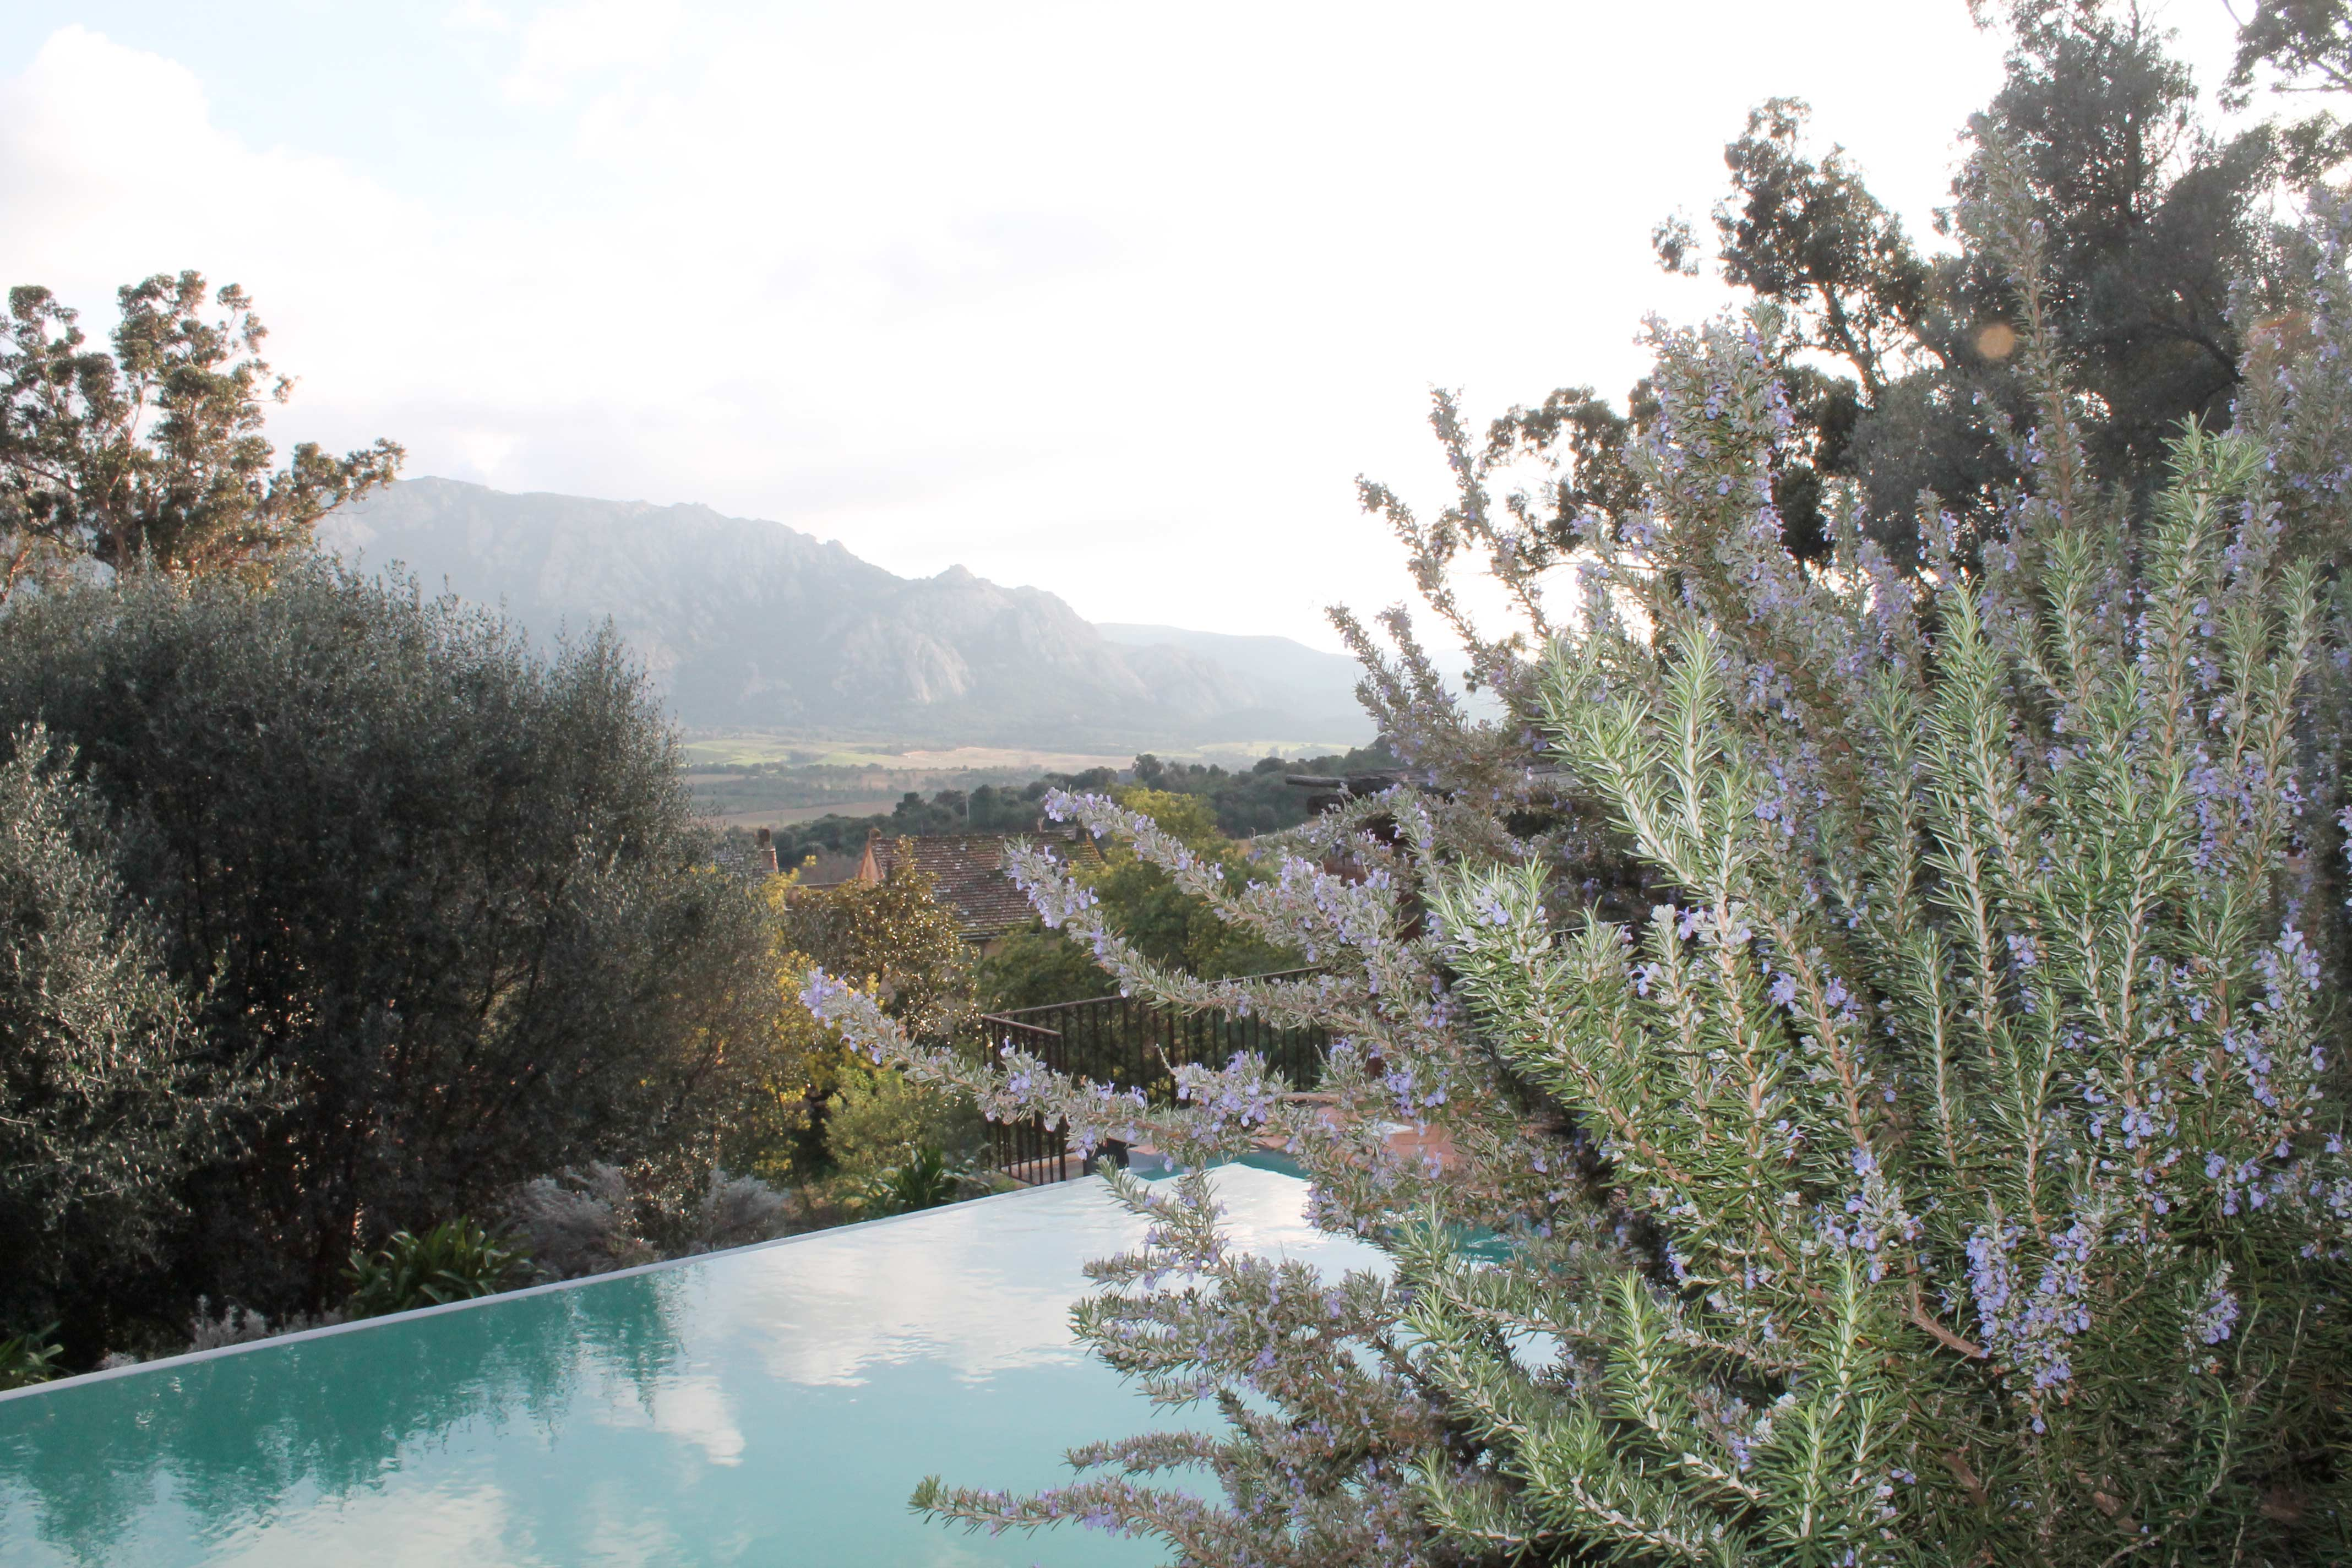 Corsica wine tour, infinity pool in a private house